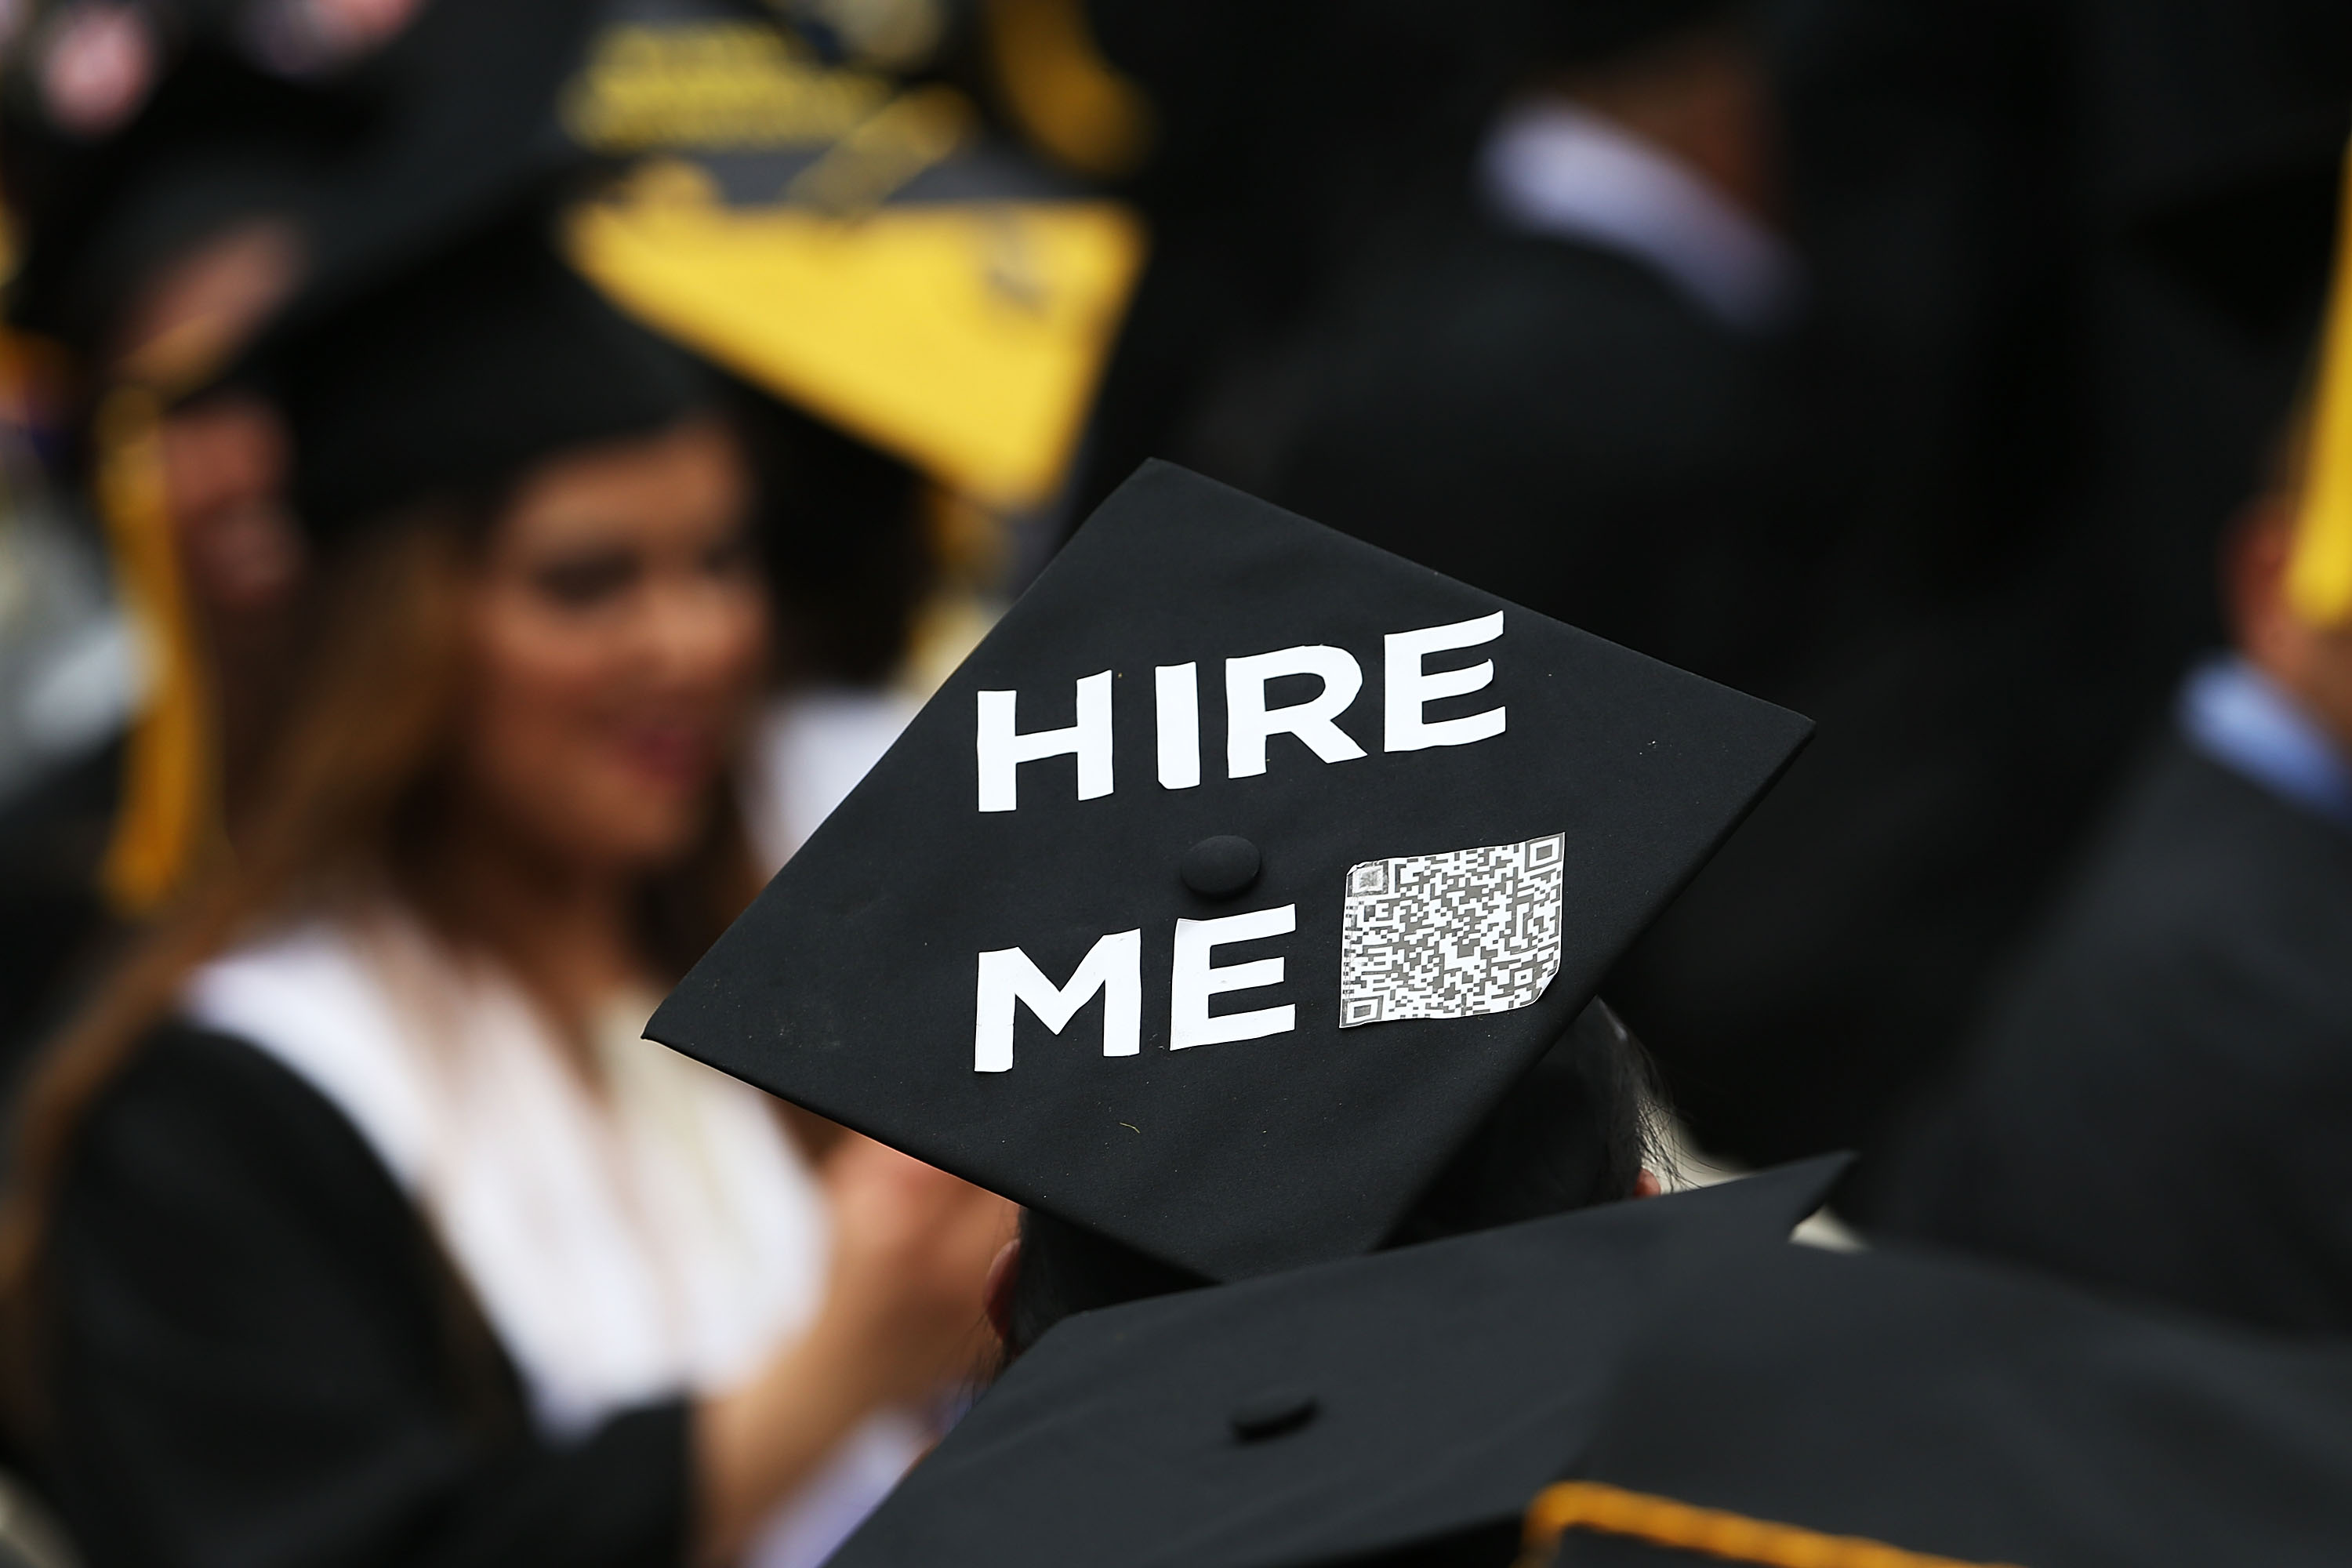 A graduating student's cap during commencement exercises at City College in New York City on June 3, 2016.